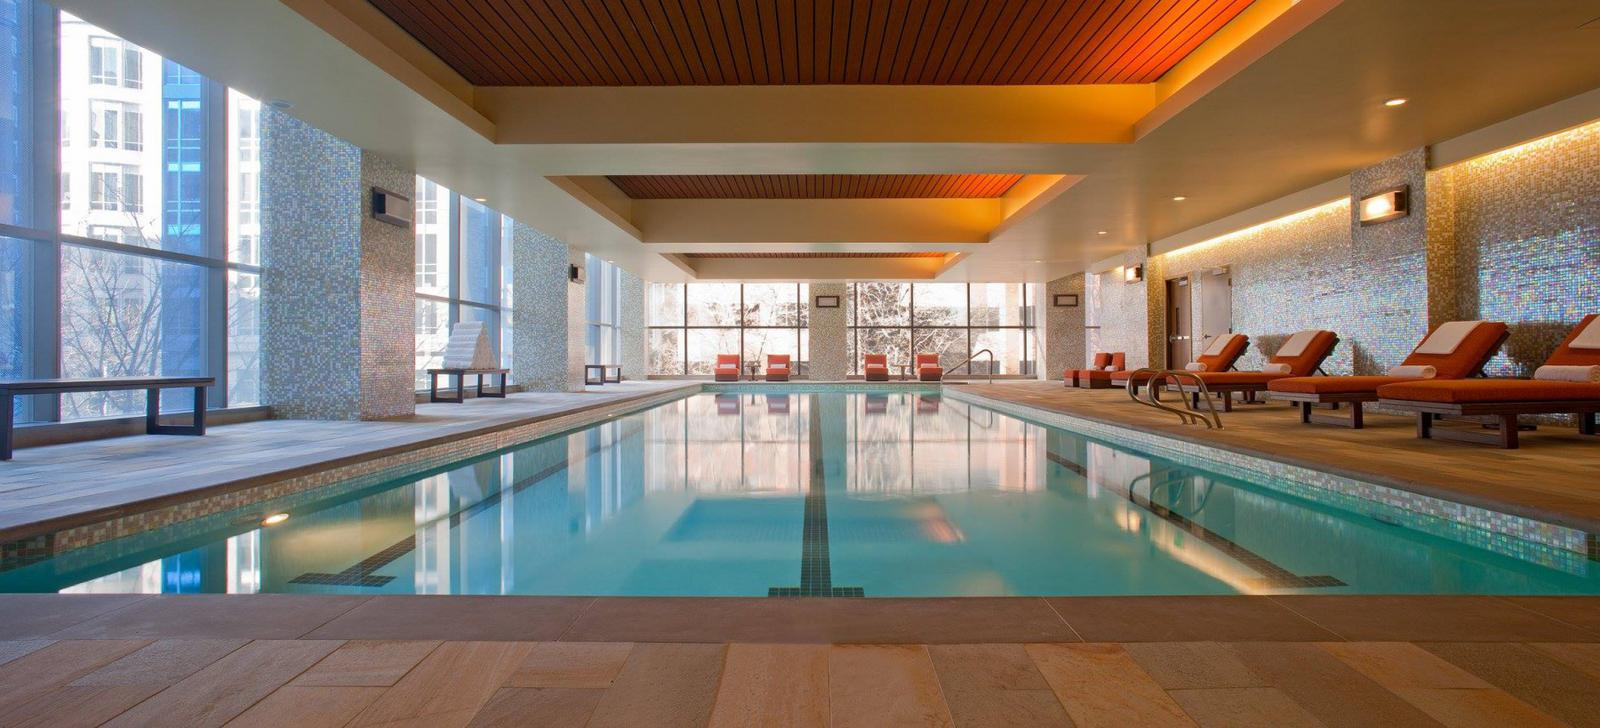 Hotels with pools in Seattle